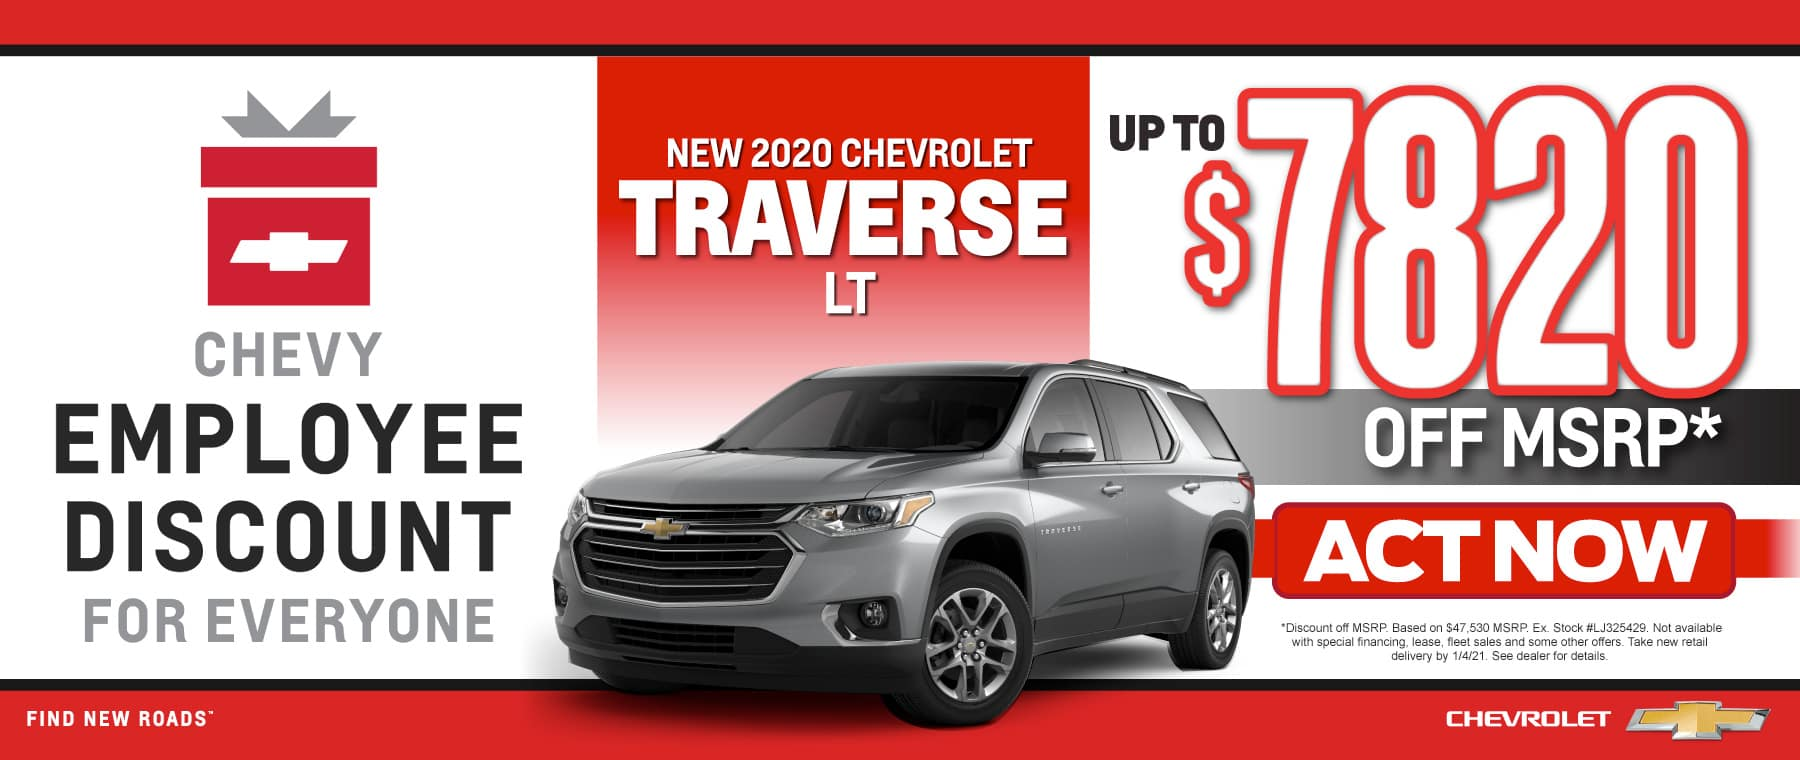 New 2020 Chevy Traverse - Up to $7820 off msrp - Act now